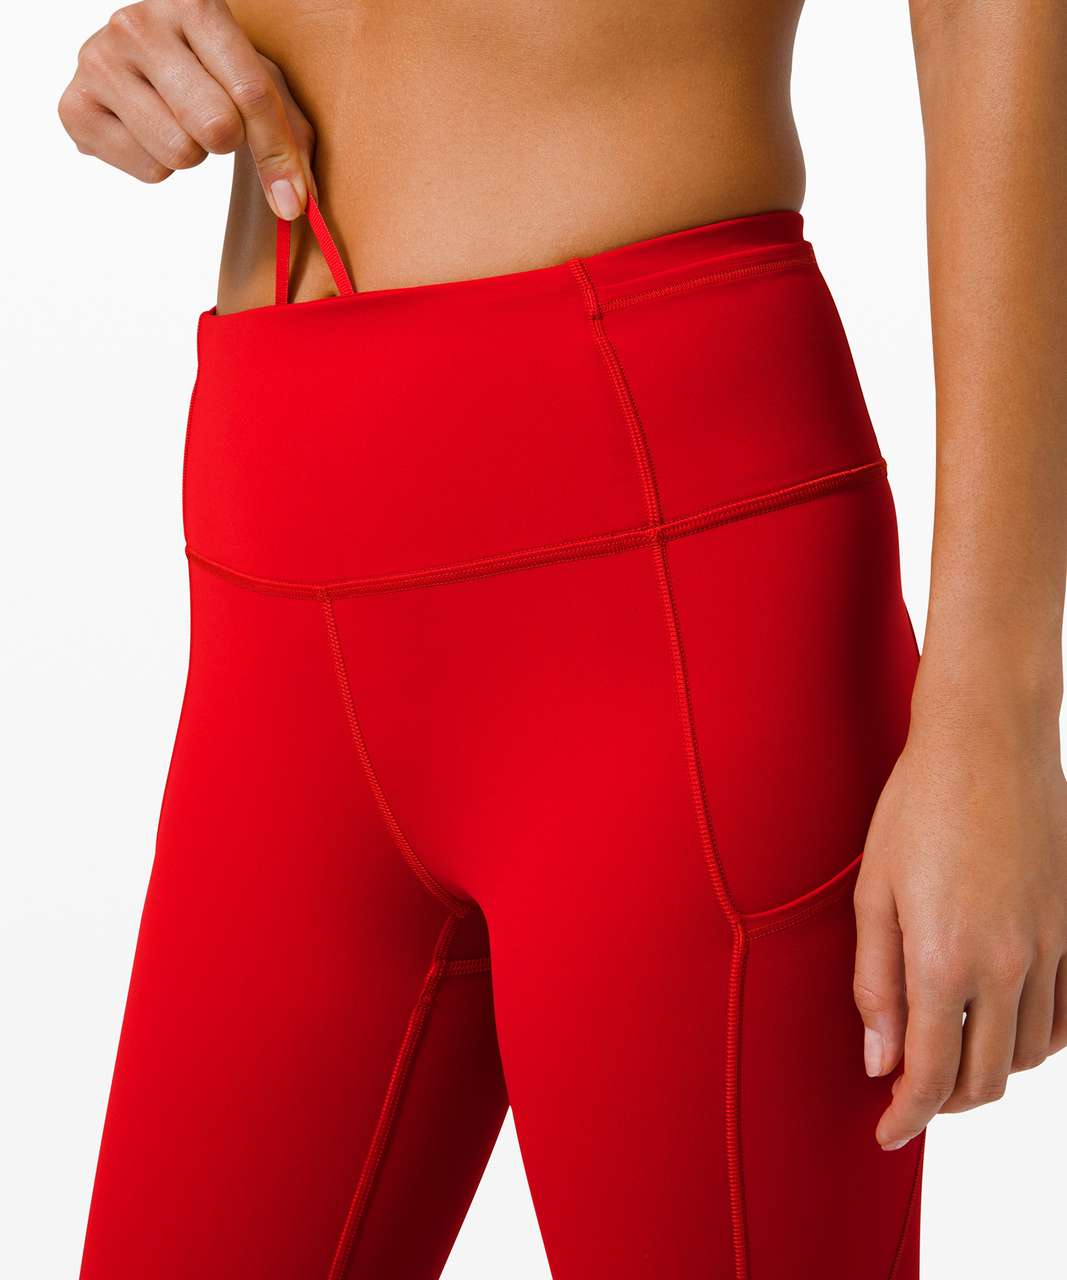 "Lululemon Fast and Free Crop II 19"" *Non-Reflective - Dark Red"